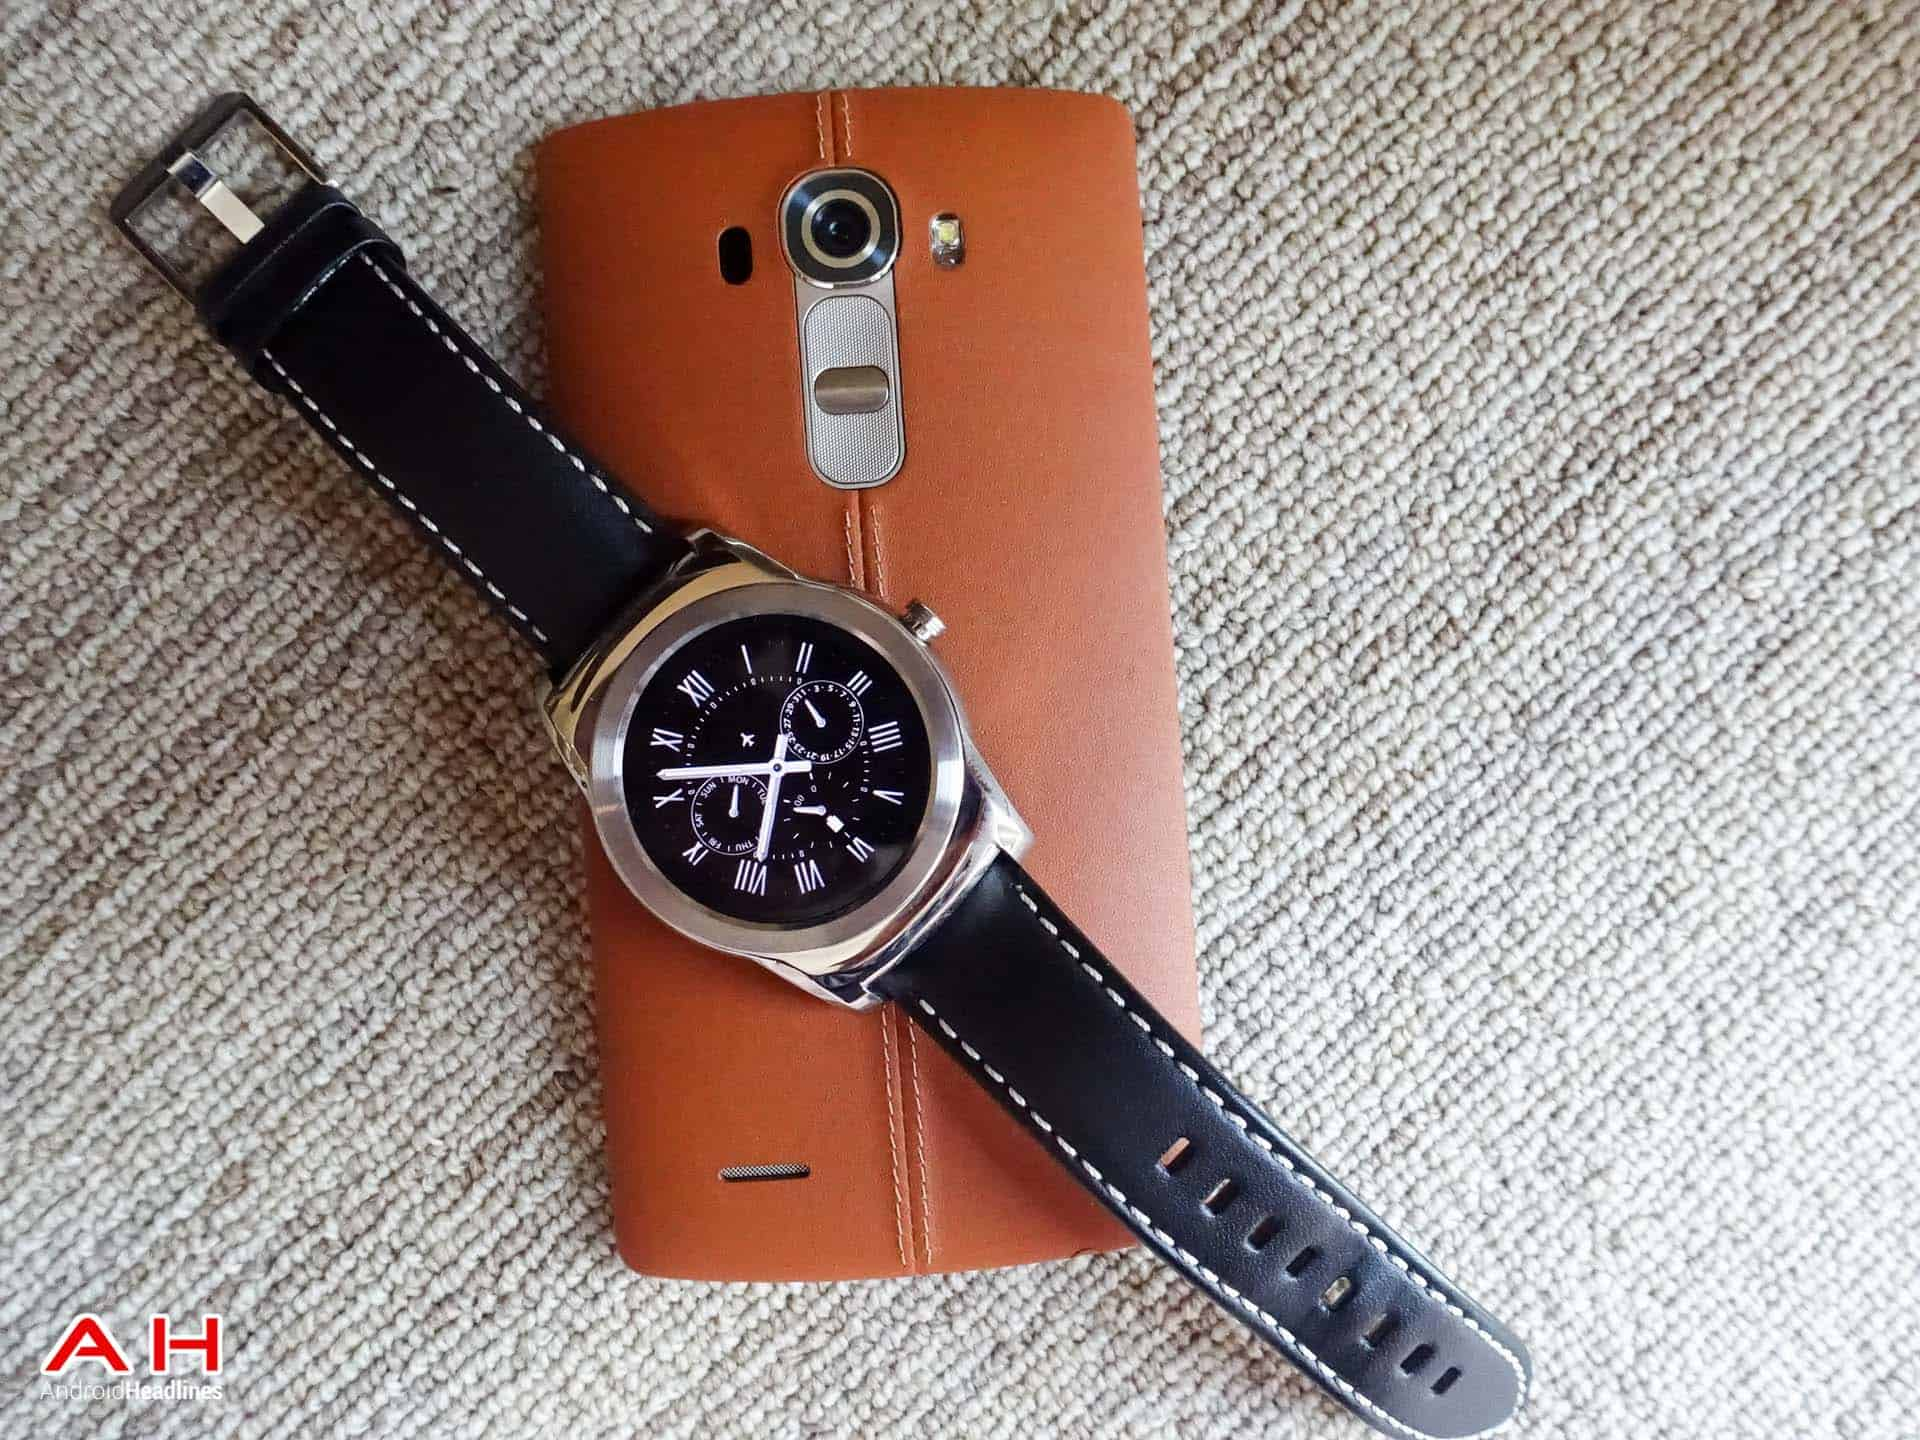 LG-Watch-Urbane-Review-AH-22